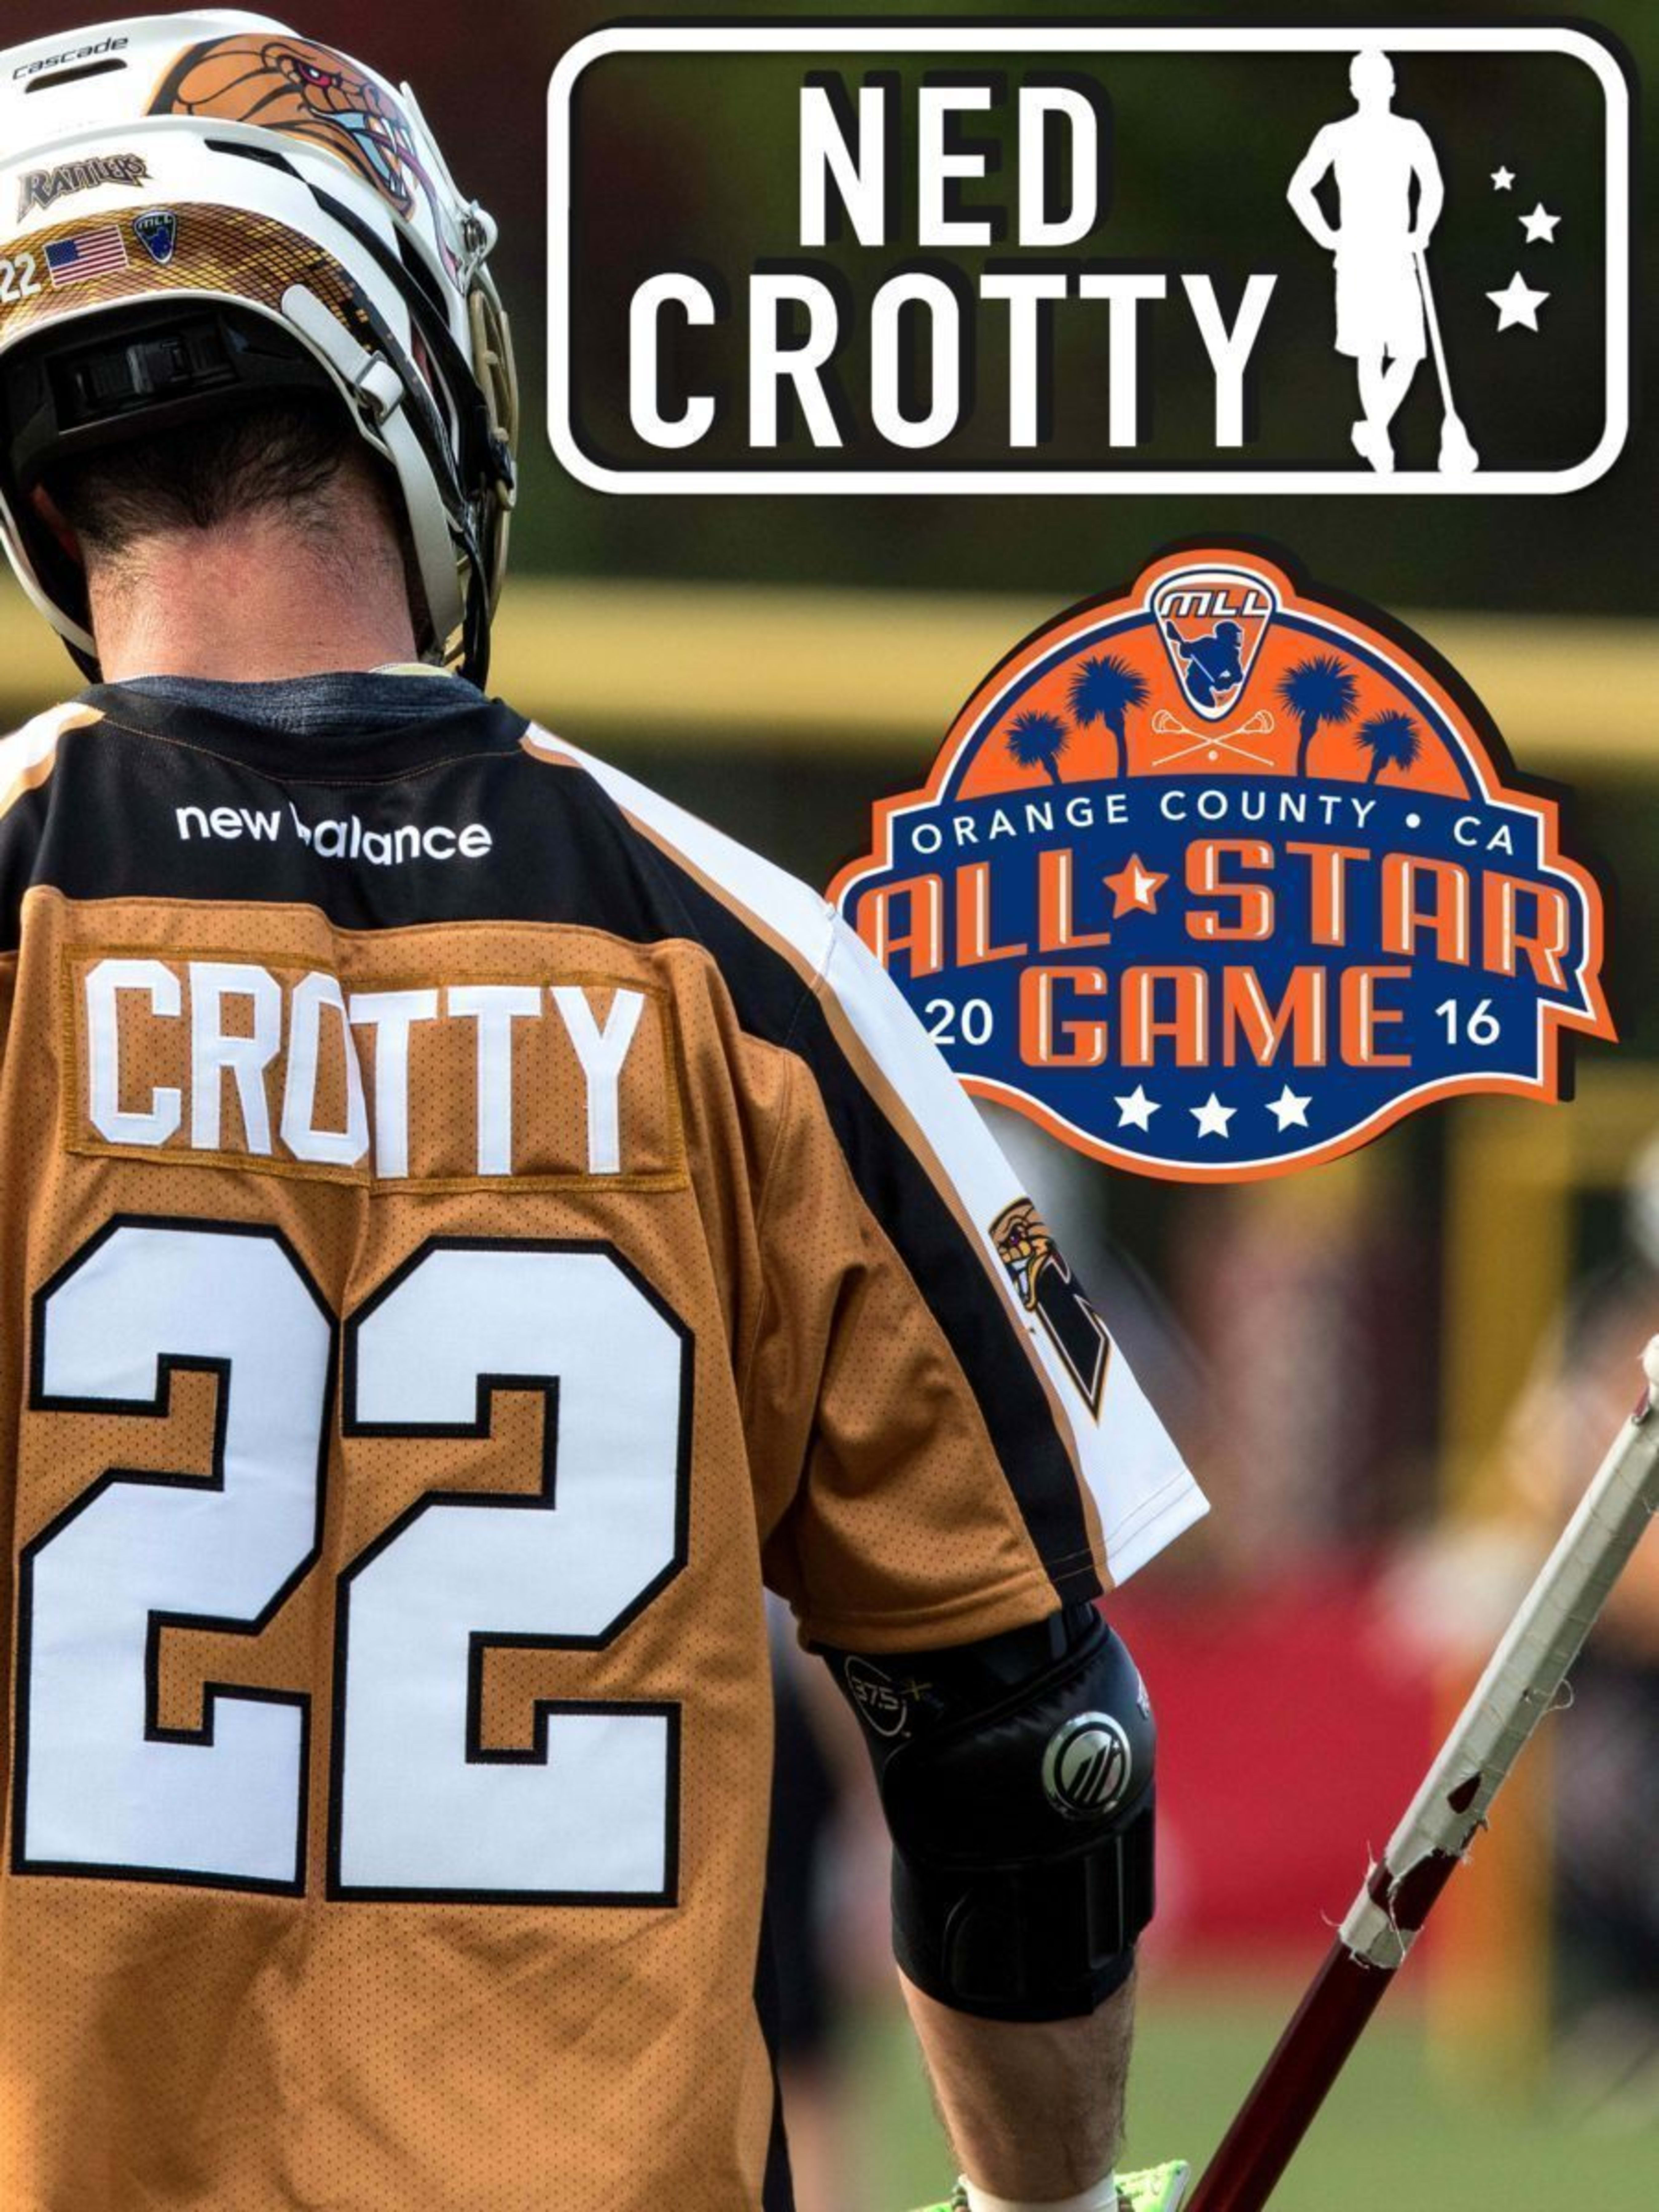 Ned Crotty - major league lacrosse all stars by brand